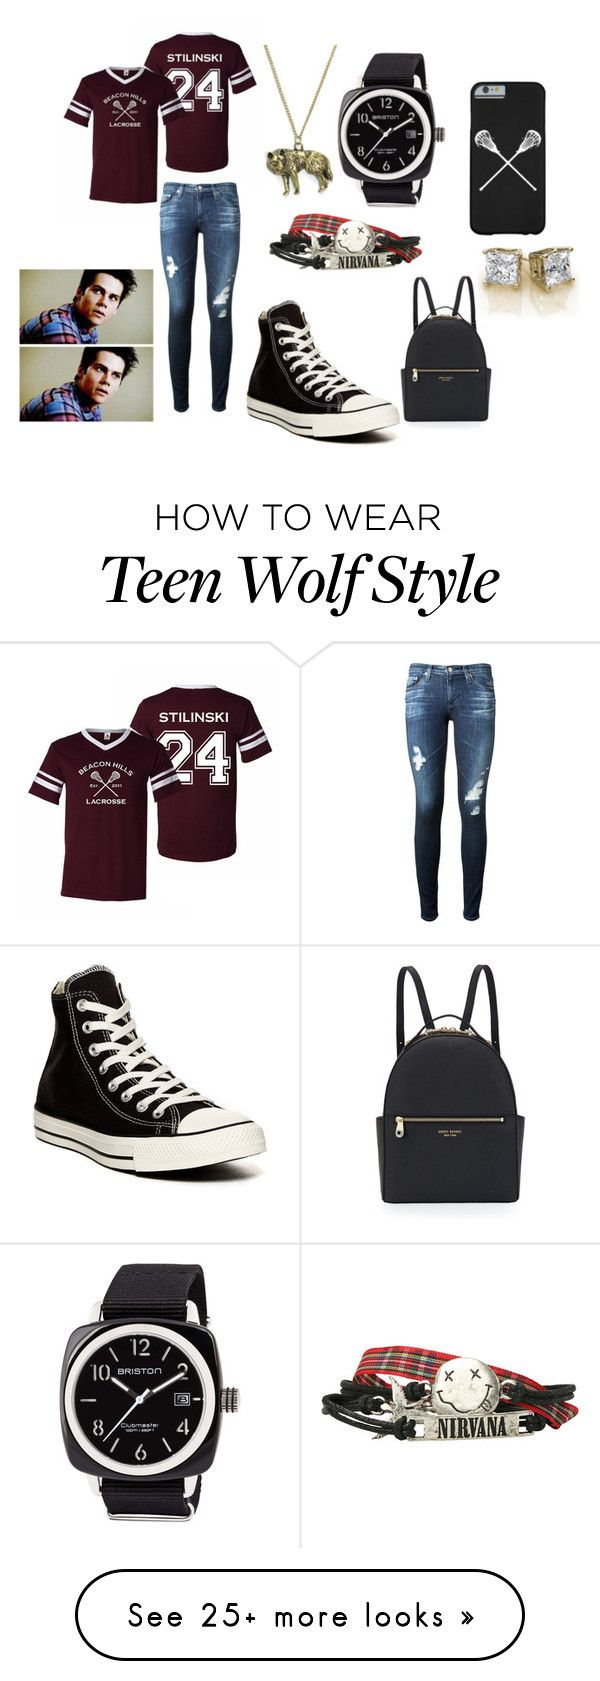 """""""Outfit #33"""" by phoenkx on Polyvore featuring AG Adriano Goldschmied, Converse, Henri Bendel and Briston"""